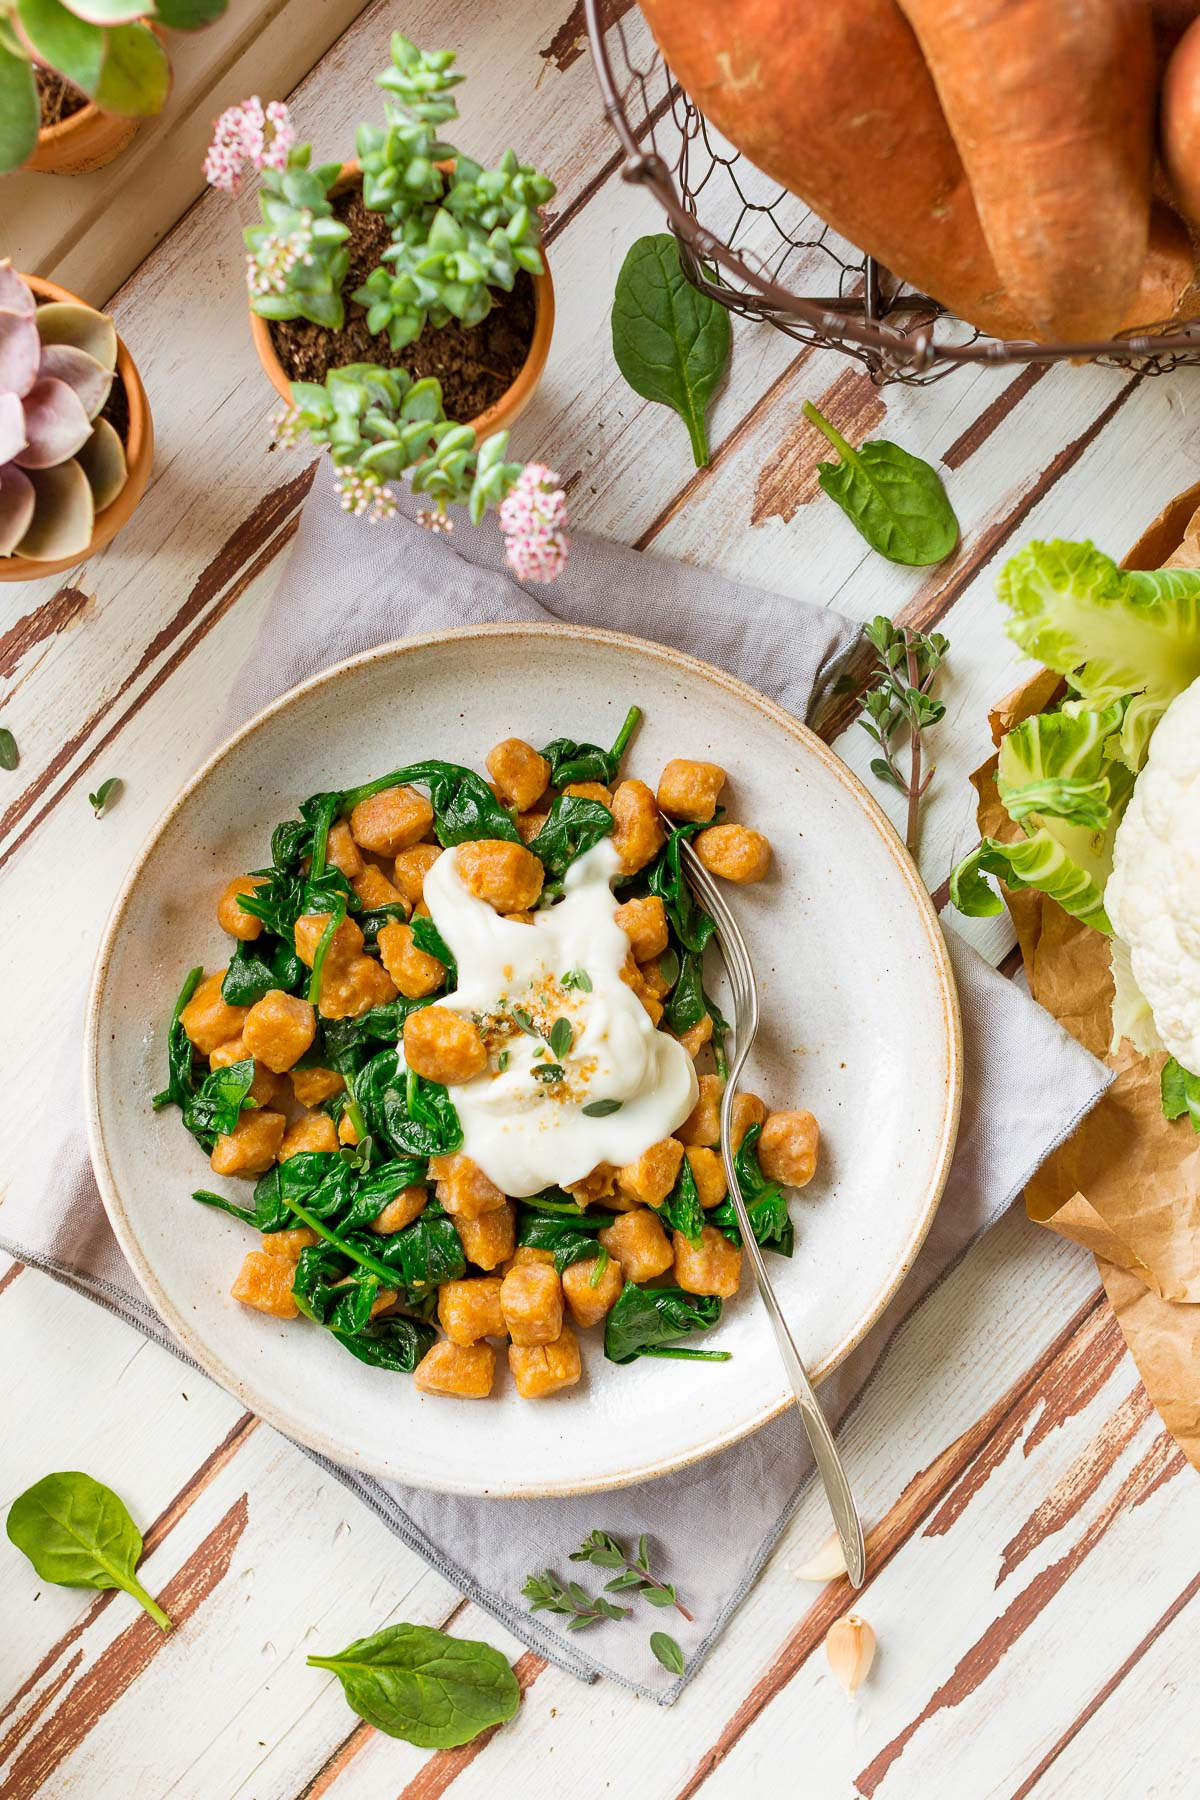 ricetta GNOCCHI DI PATATE DOLCI VEGAN di farro integrale con SALSA di CAVOLFIORE light vegan SWEET POTATO GNOCCHI with CAULIFLOWER SAUCE and spinach #sweetpotato #vegan #cauliflower #gnocchi